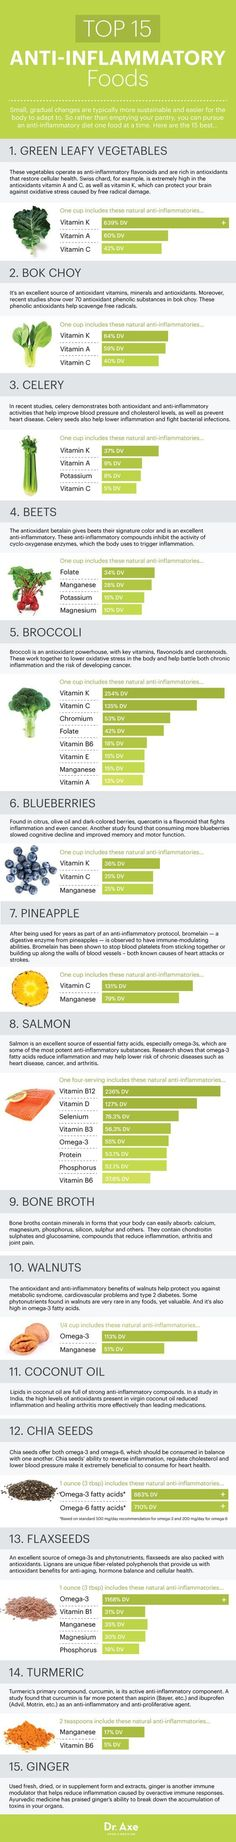 Top 15 Anti-Inflammatory Foods Infographic